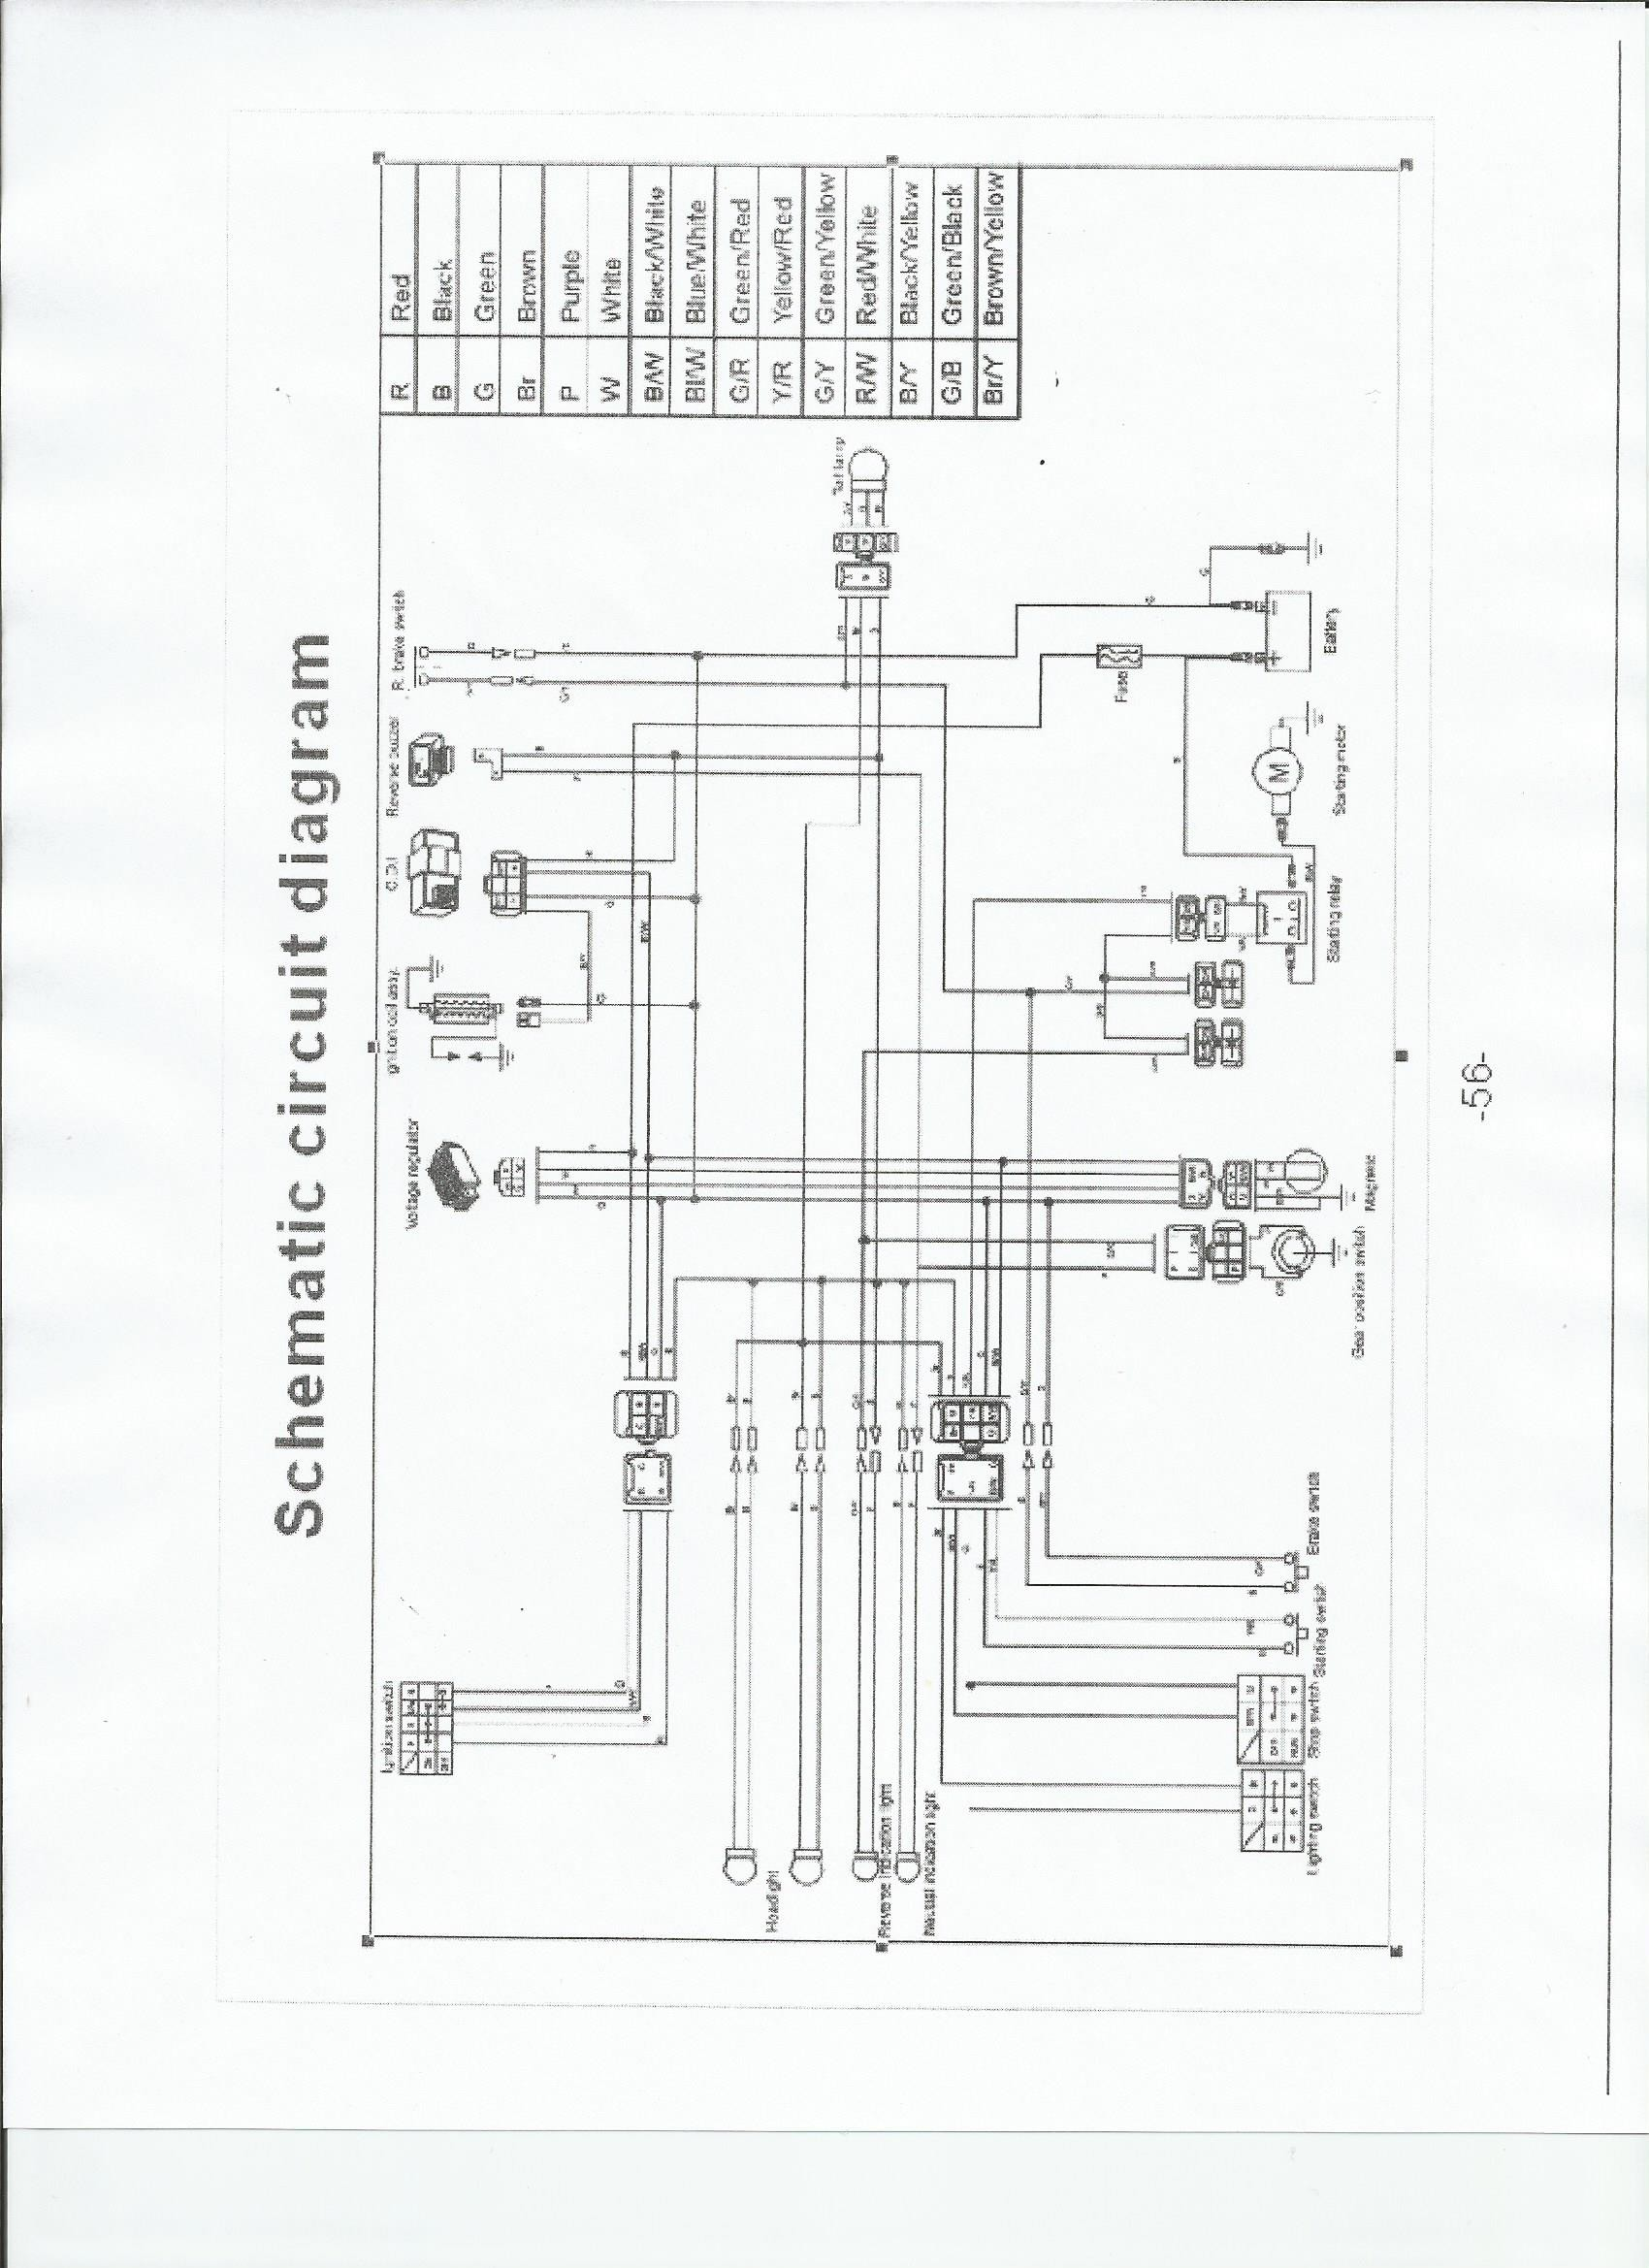 2006 chinese atv wiring diagram wiring diagram write2007 buyang 107cc atv wiring diagram wiring diagrams site 6 pin cdi wiring diagram 2006 chinese atv wiring diagram